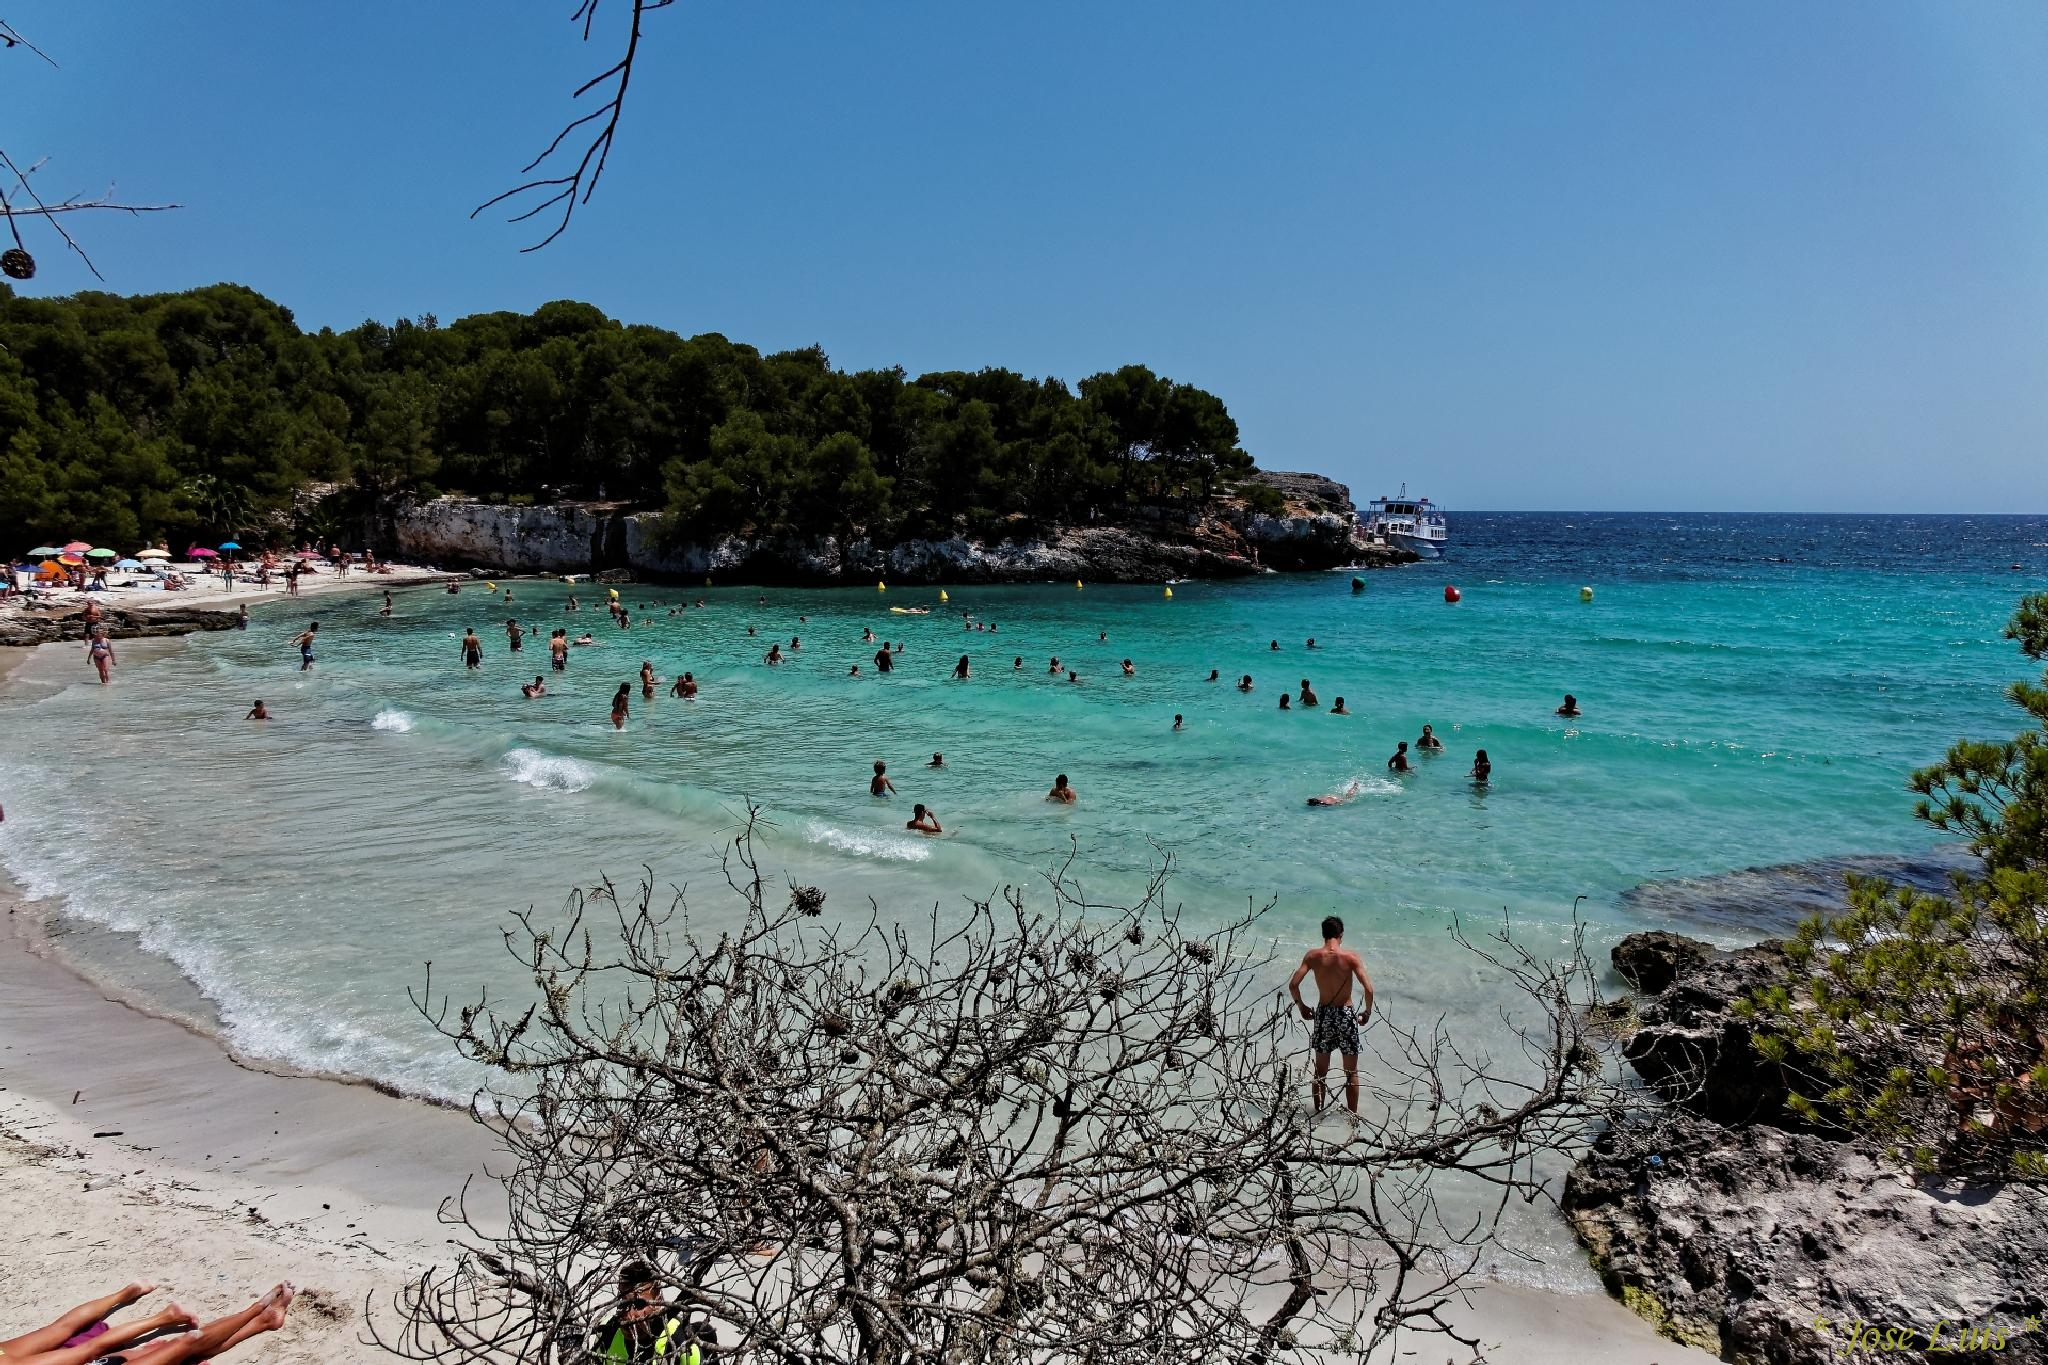 Menorca by jose.downlord